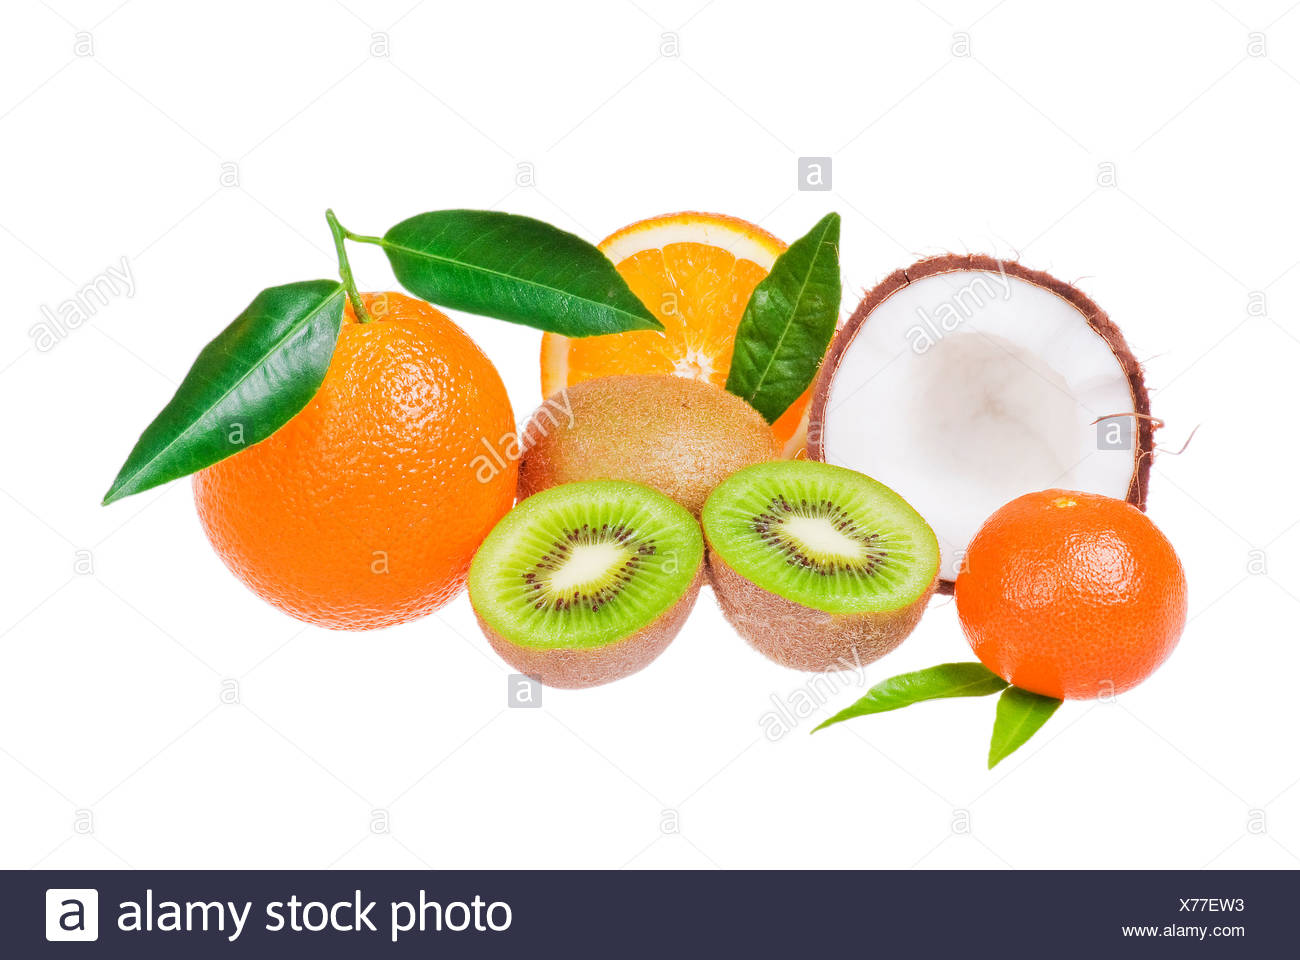 fruit hairy stock photos & fruit hairy stock images - page 4 - alamy